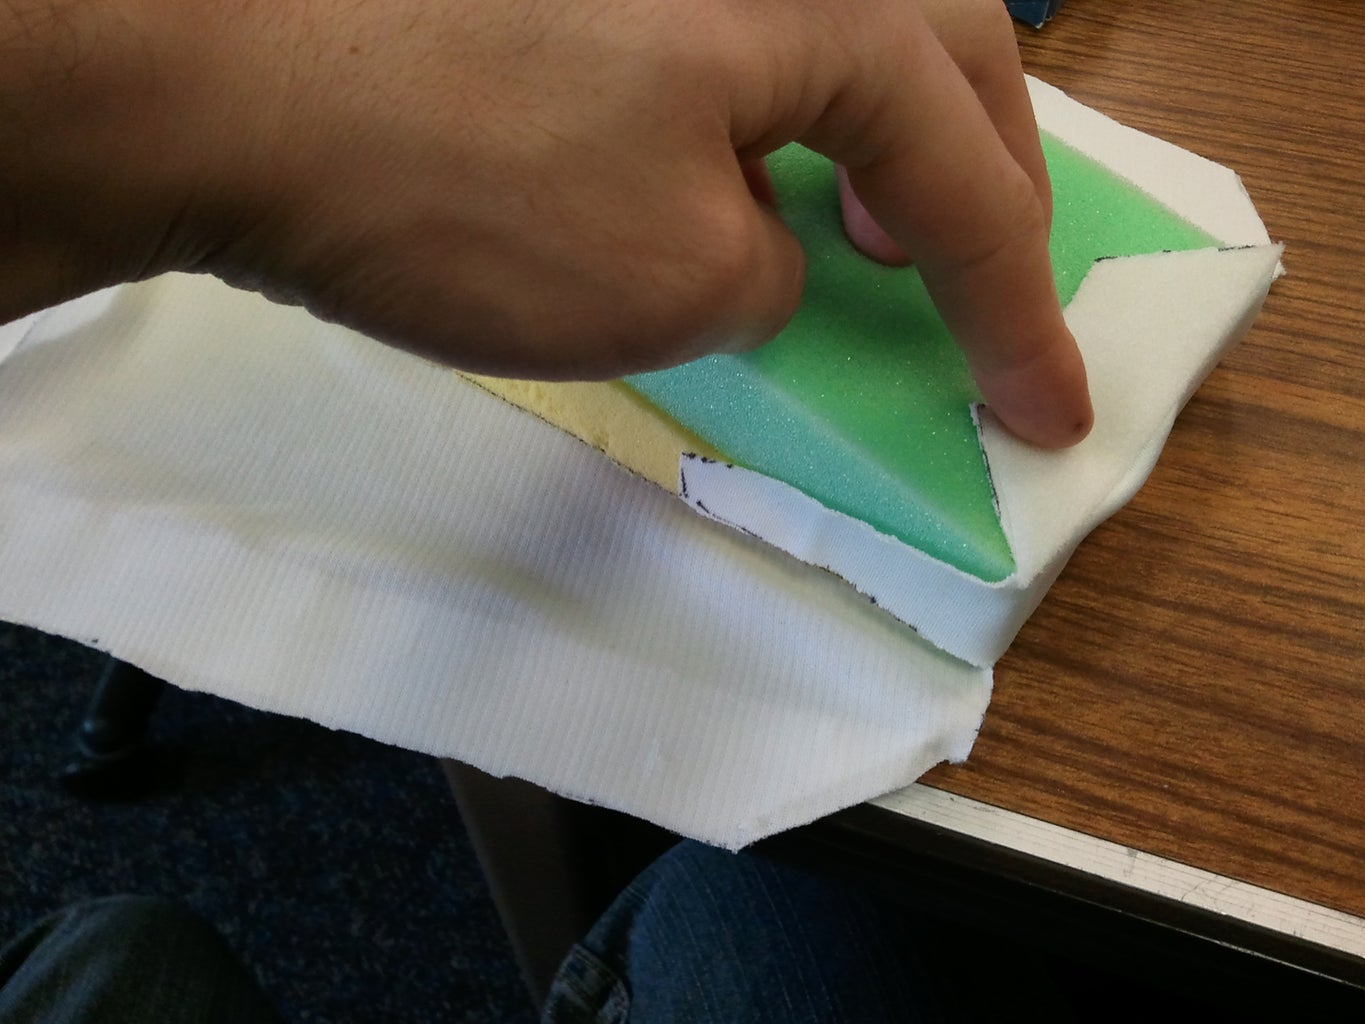 Cutting and Folding the Fabric